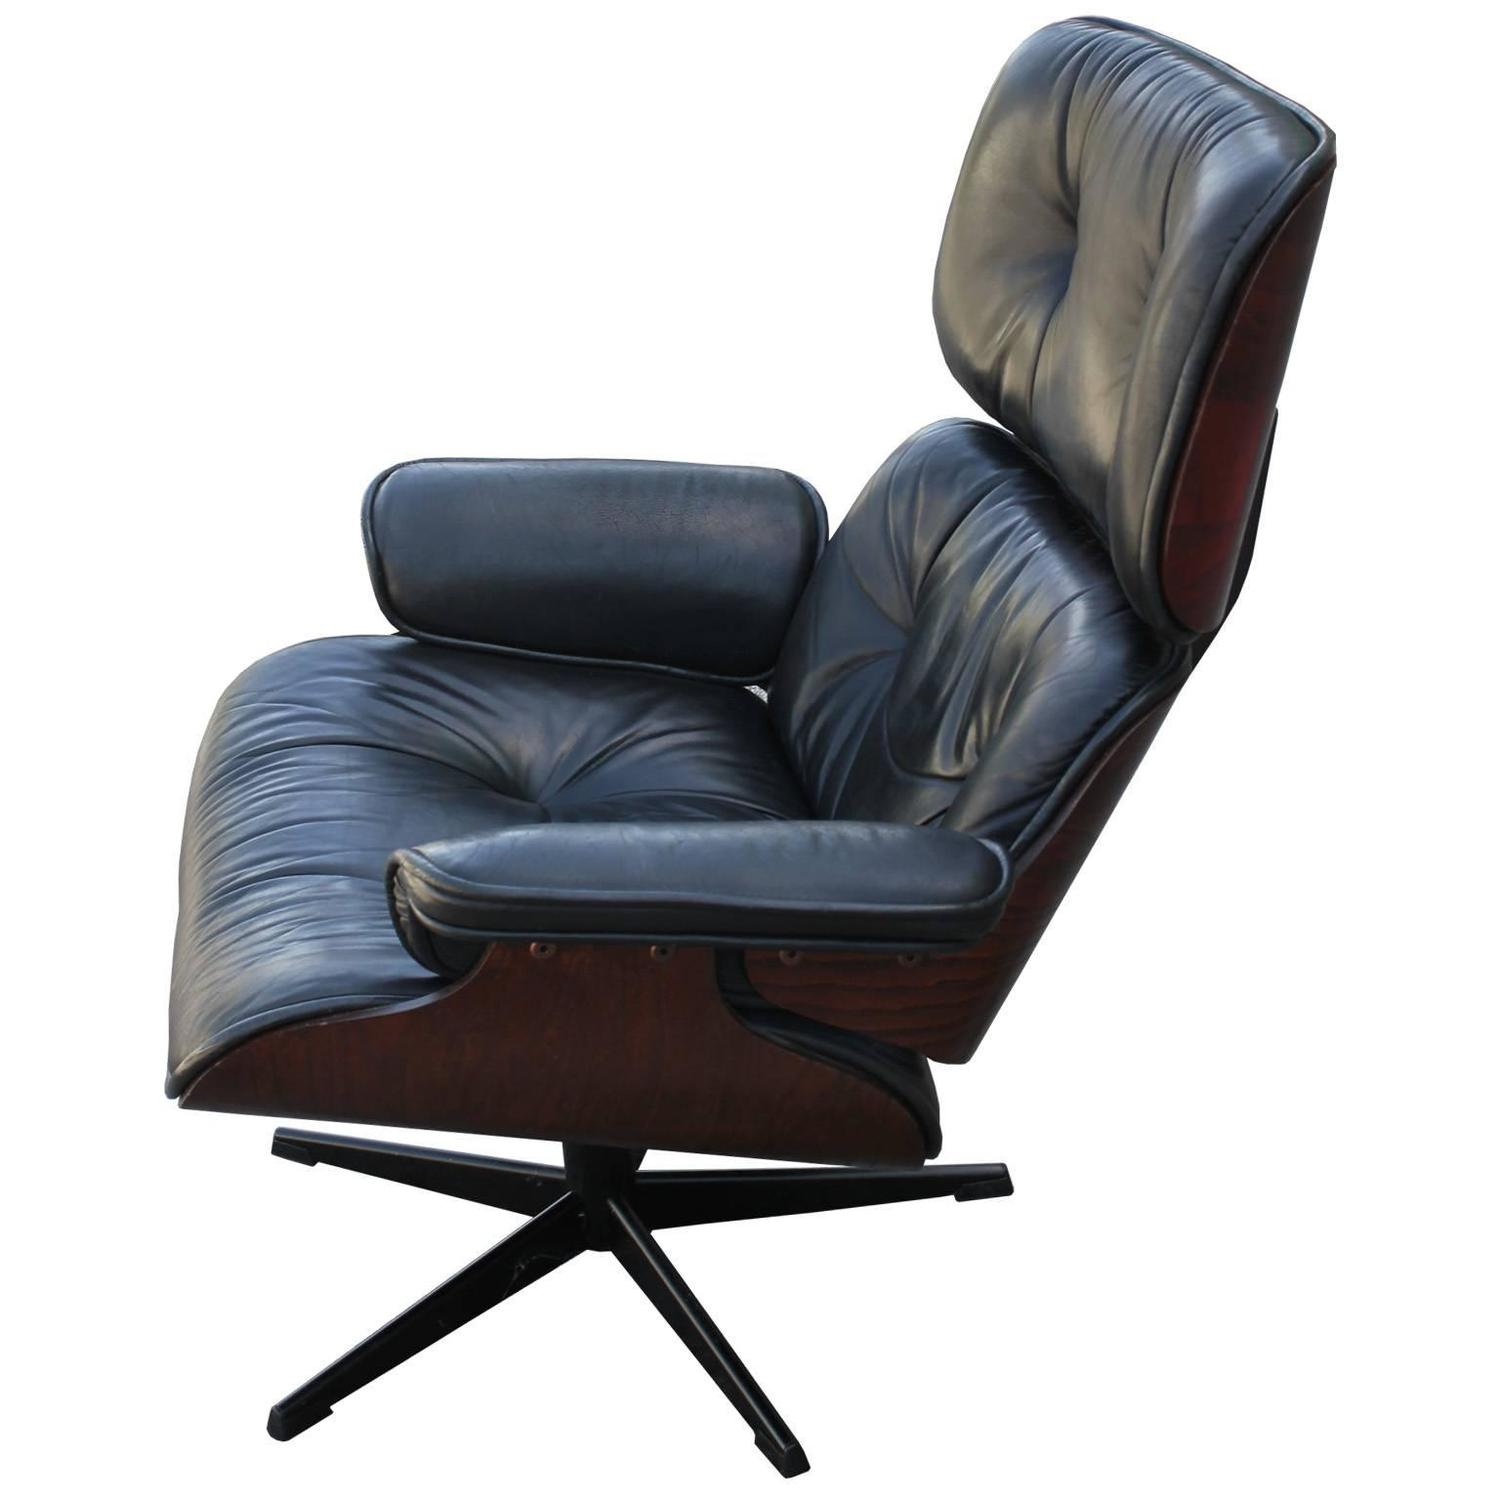 Incredible Eames Style Lounge Chair Bangkokfoodietour Com Pdpeps Interior Chair Design Pdpepsorg